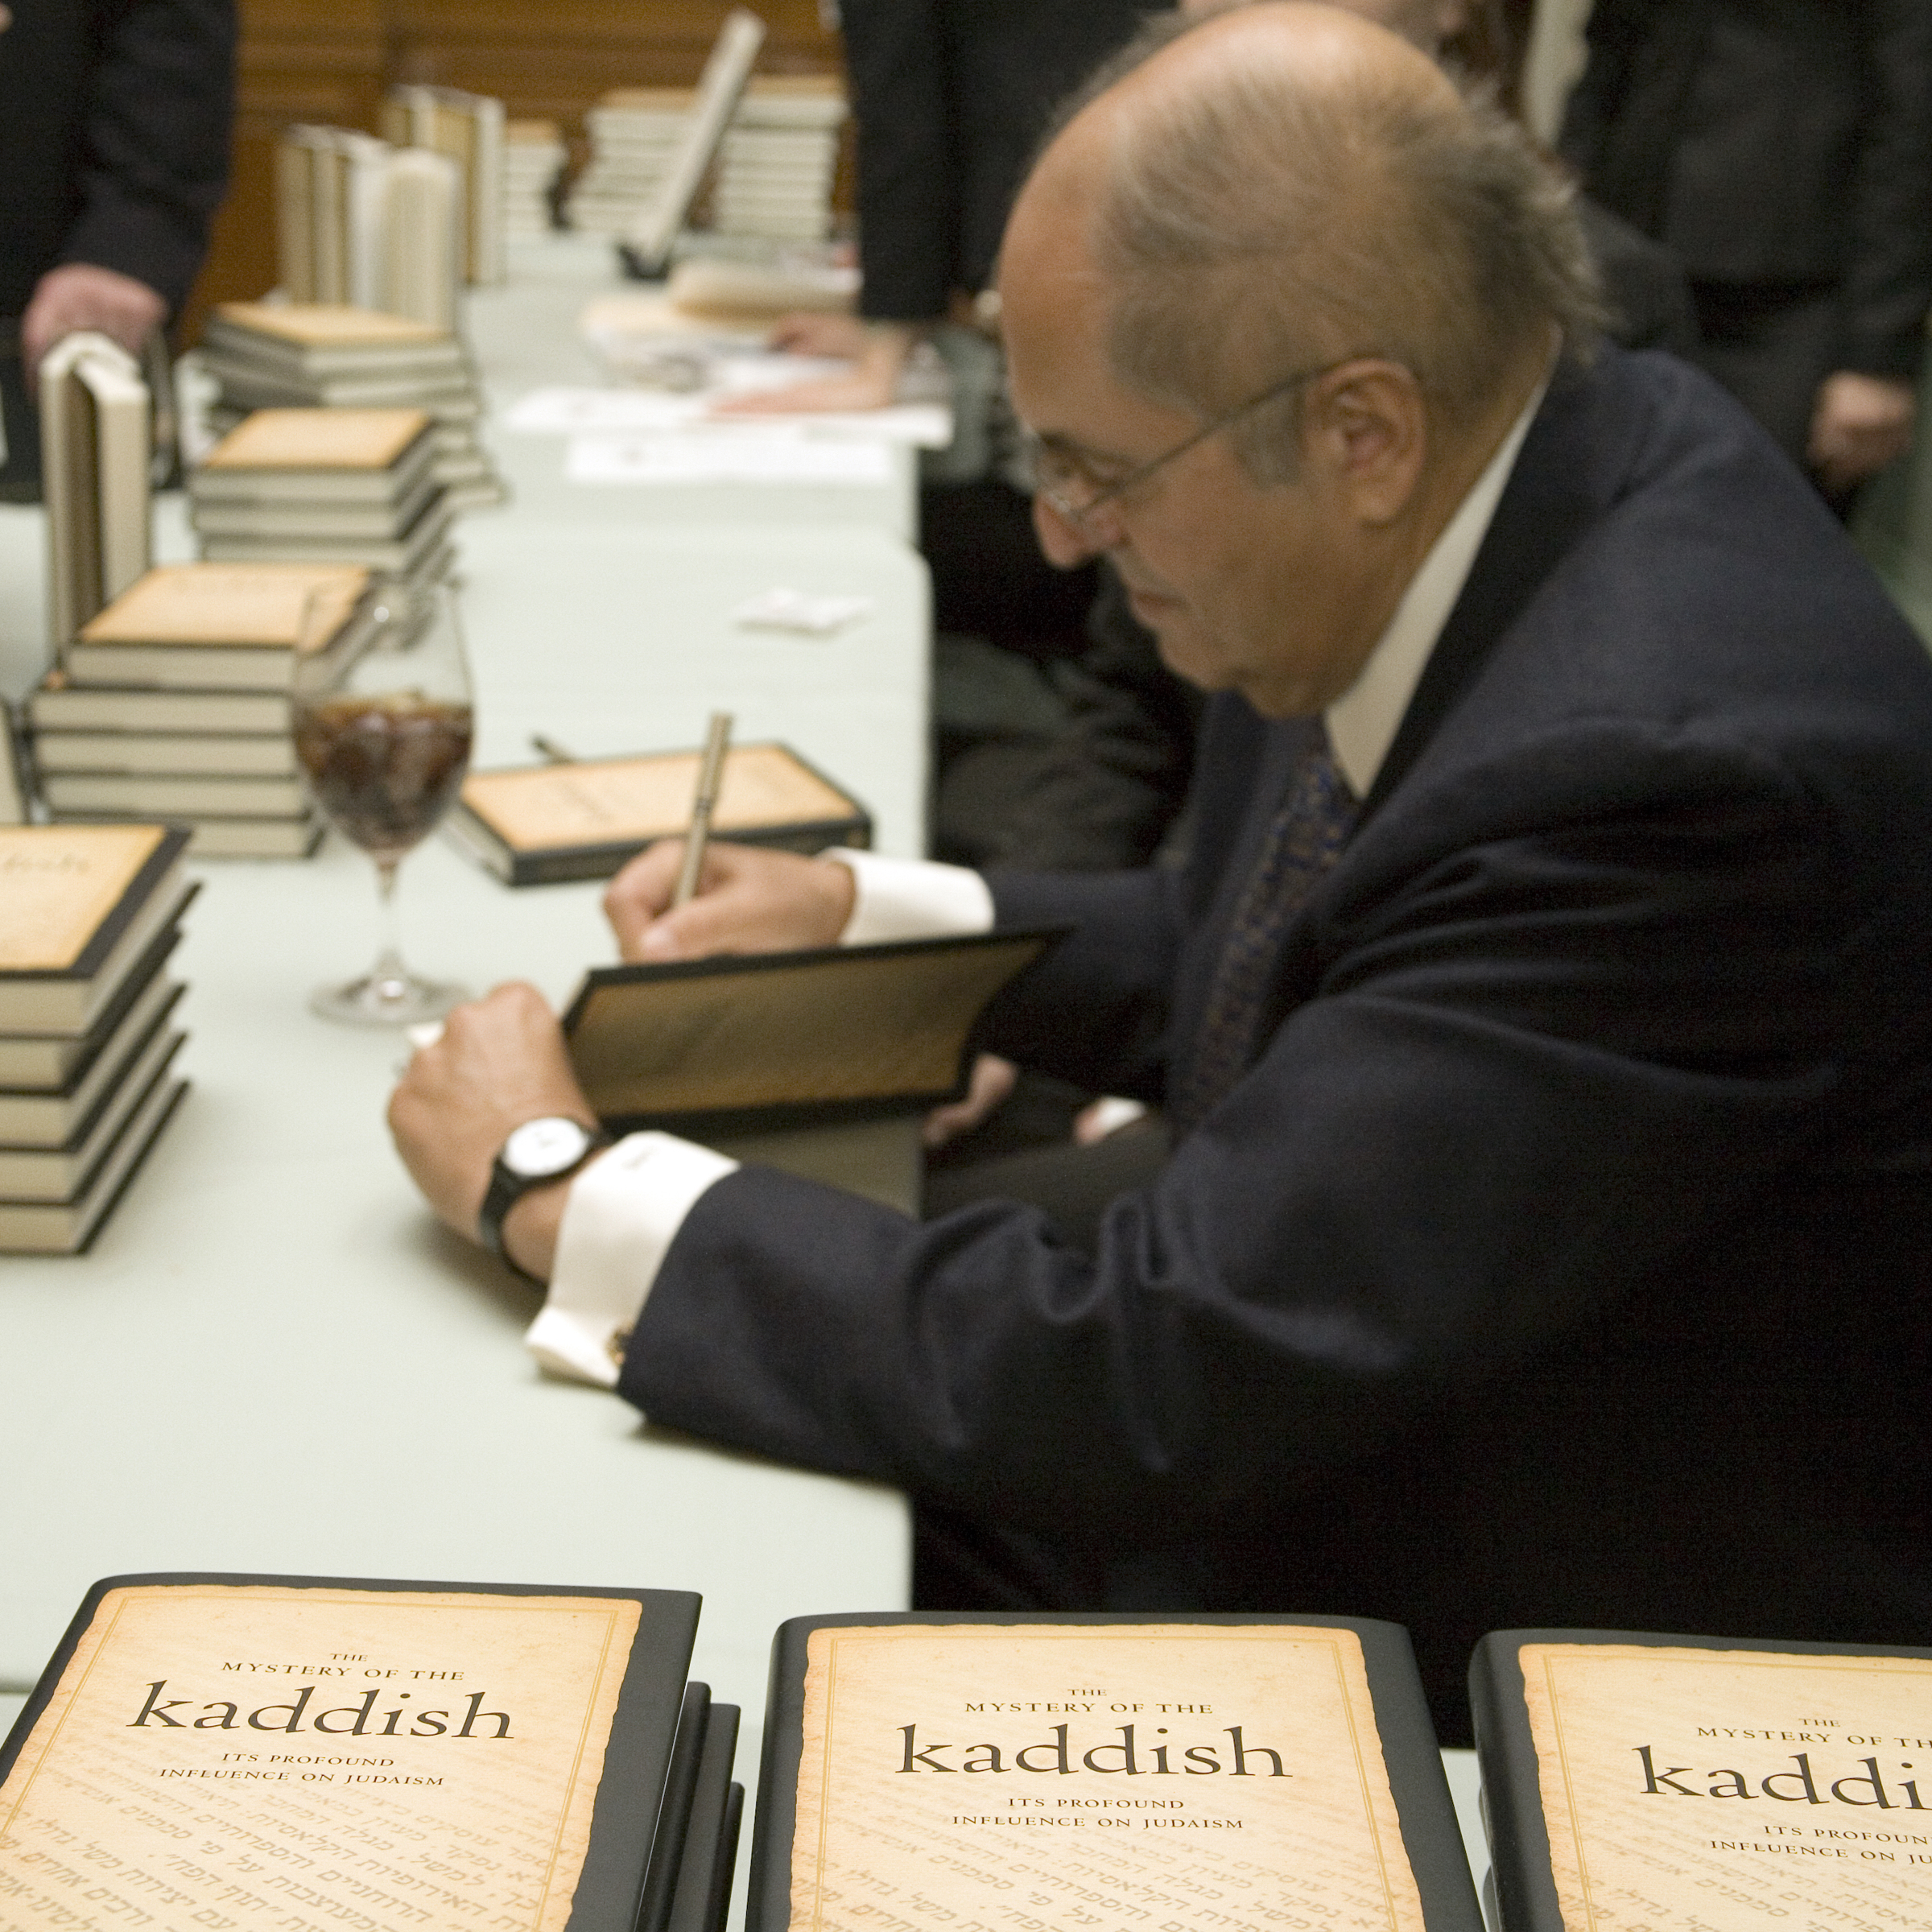 2007.05.12 Kaddish Book Launch 015 Leon Charney